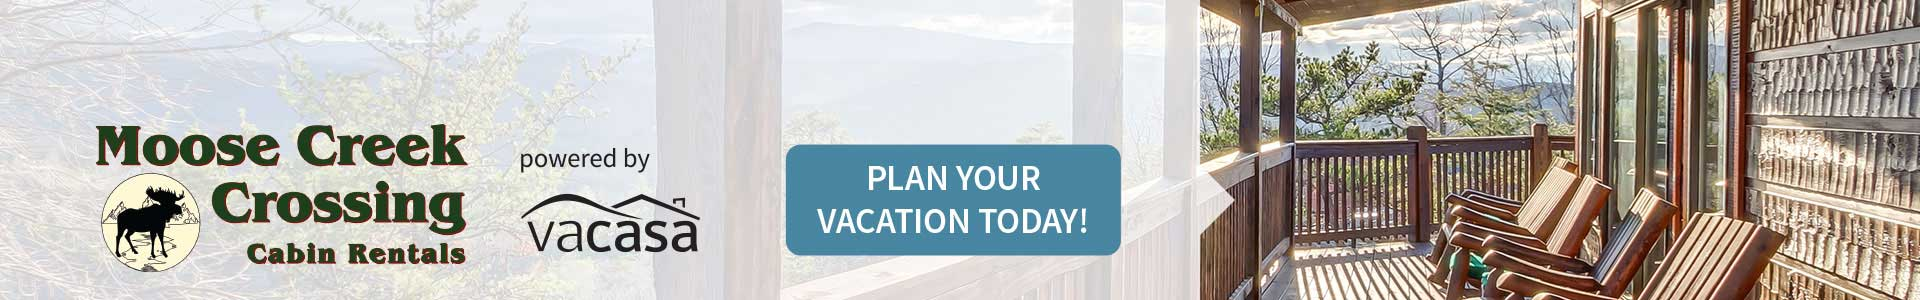 Ad - Moose Creek Crossing Cabin Rentals: Click to plan your vacation today.